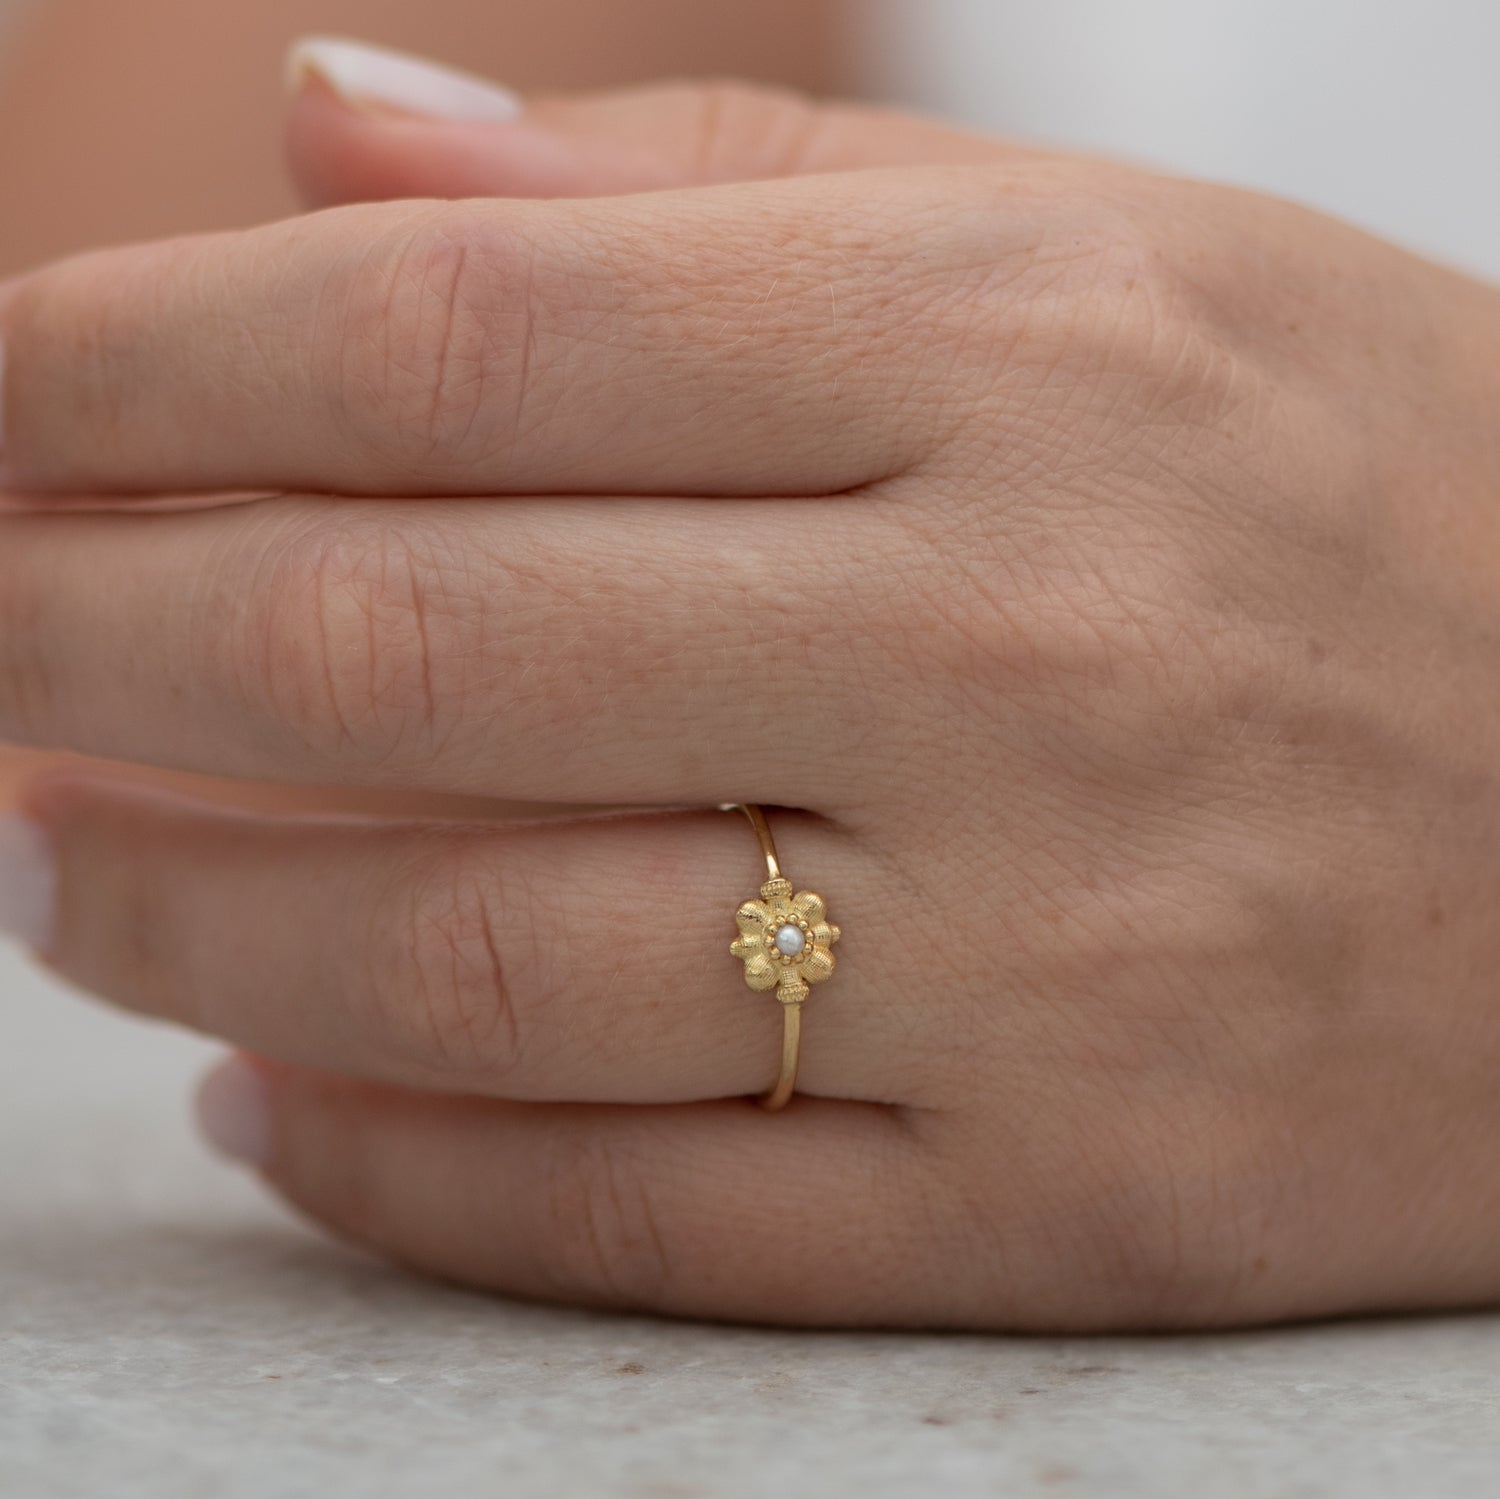 Dainty-Gold-Flower-Ring-Seed-Pearl-Ring-top-shot-on-finger